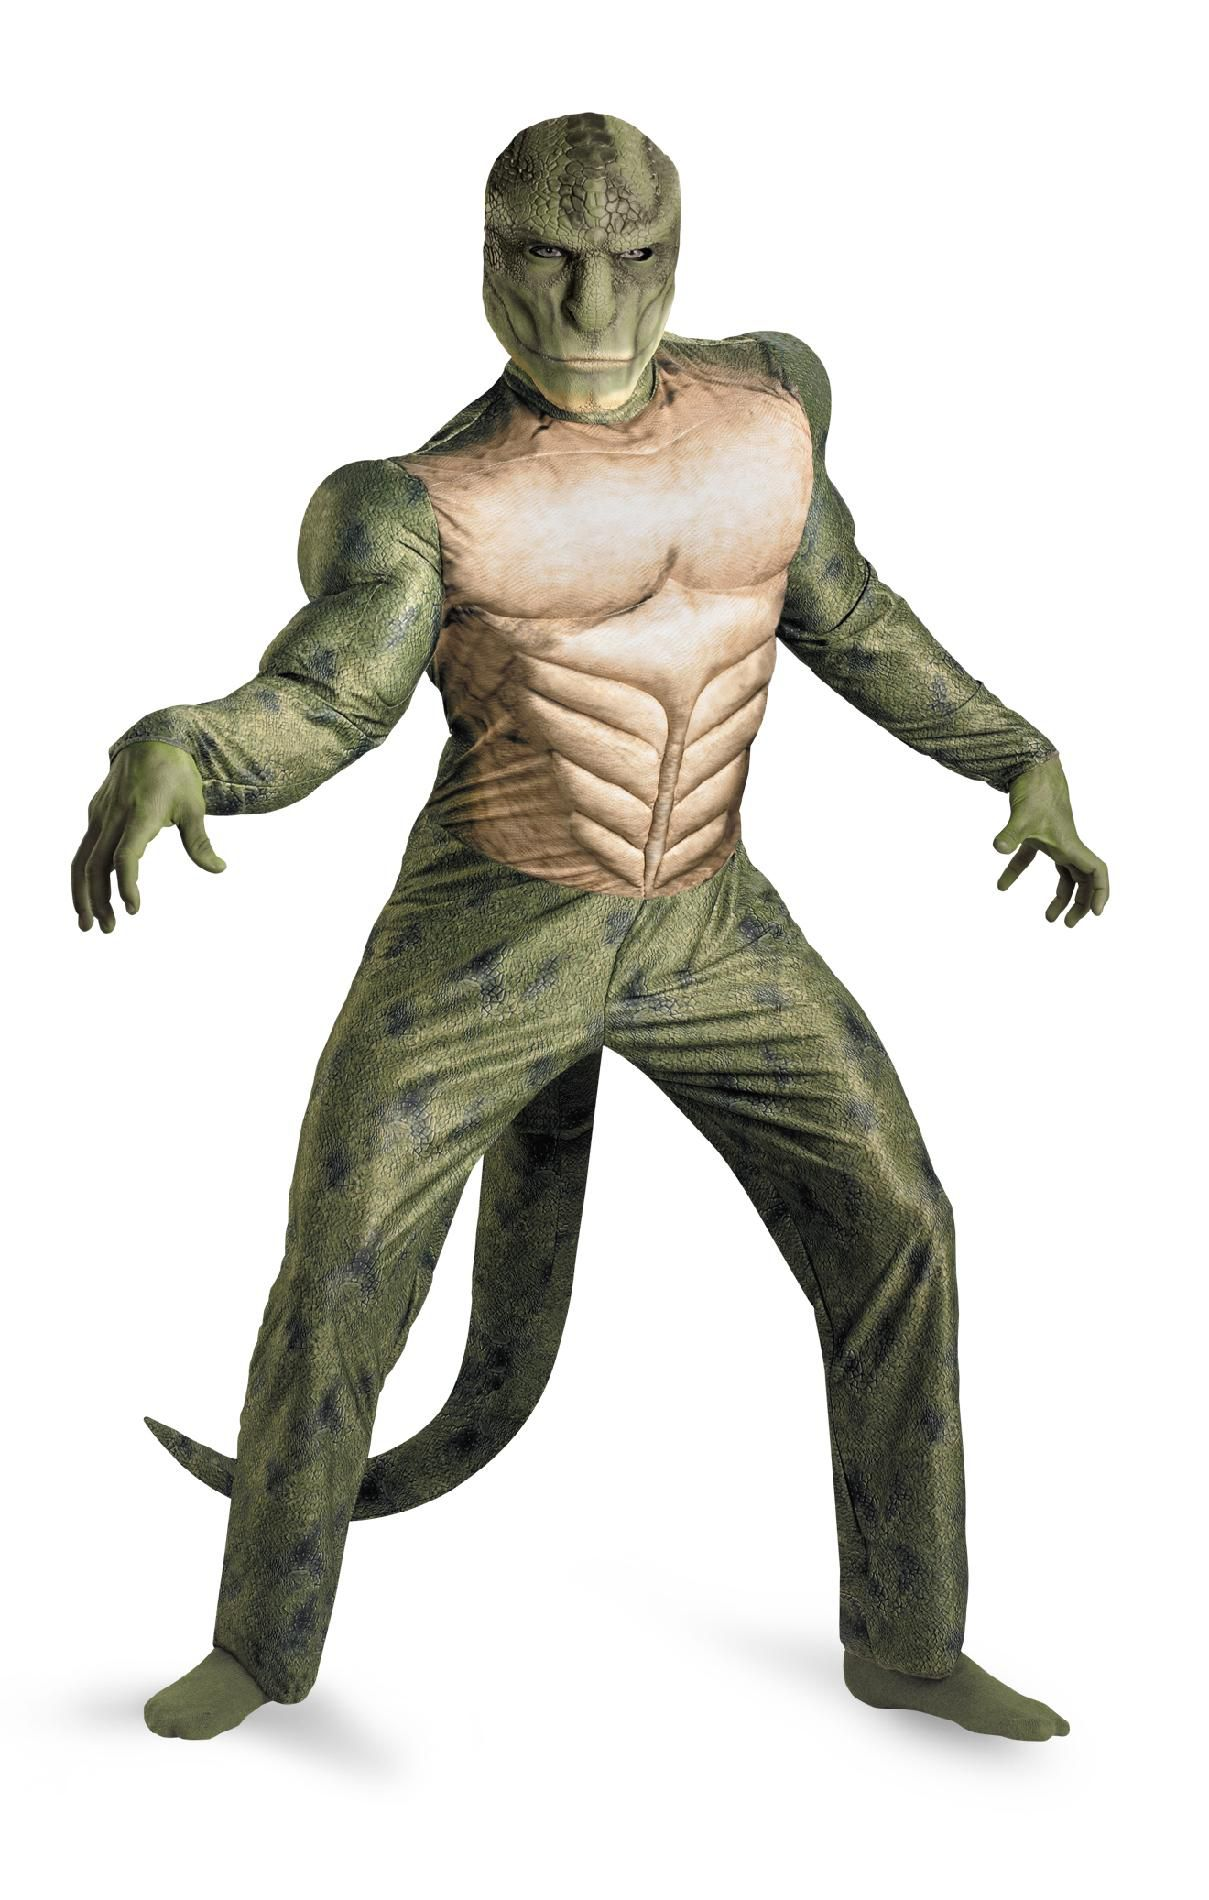 Morris Costumes Lizard Classic Muscle Ad 42-46 PartNumber: 009W005027204001P